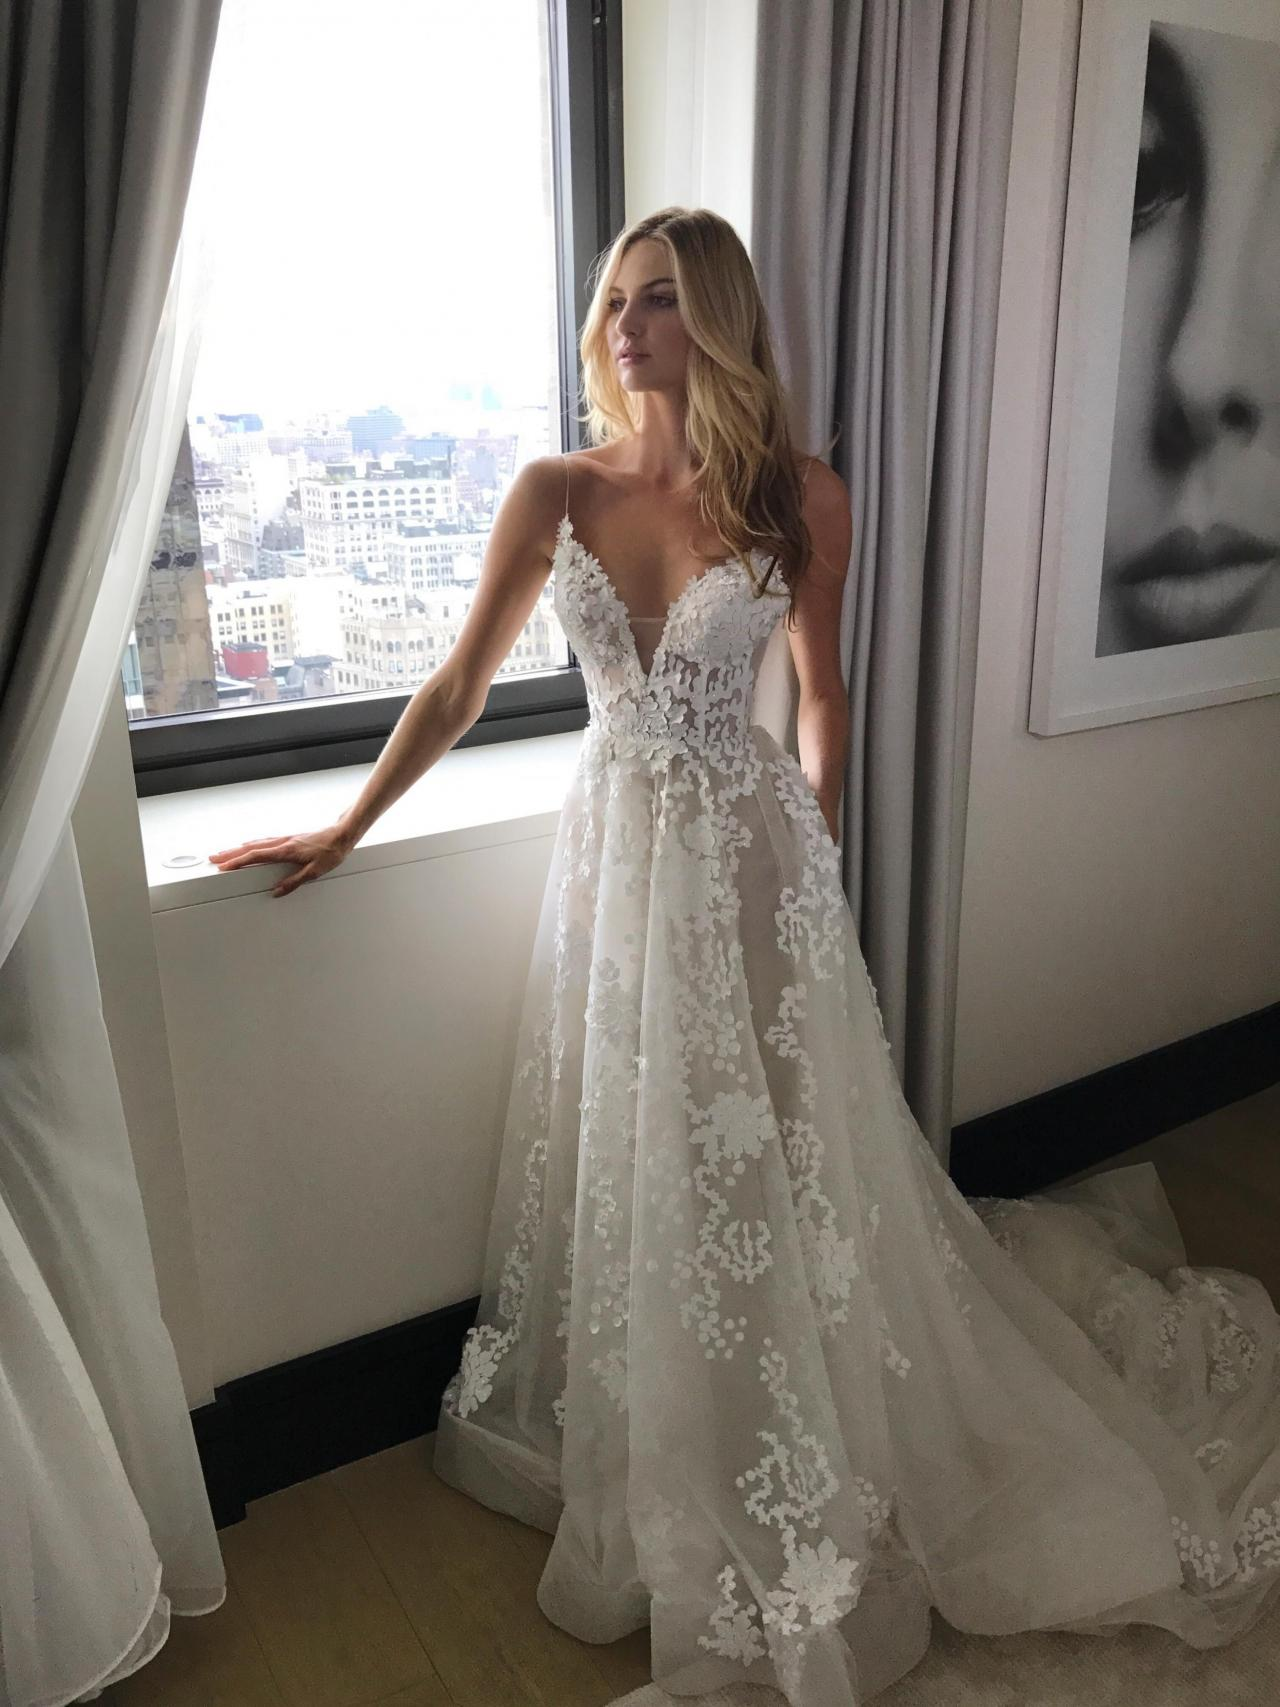 2017 Custom Made White Lace Wedding Dress y Spaghetti